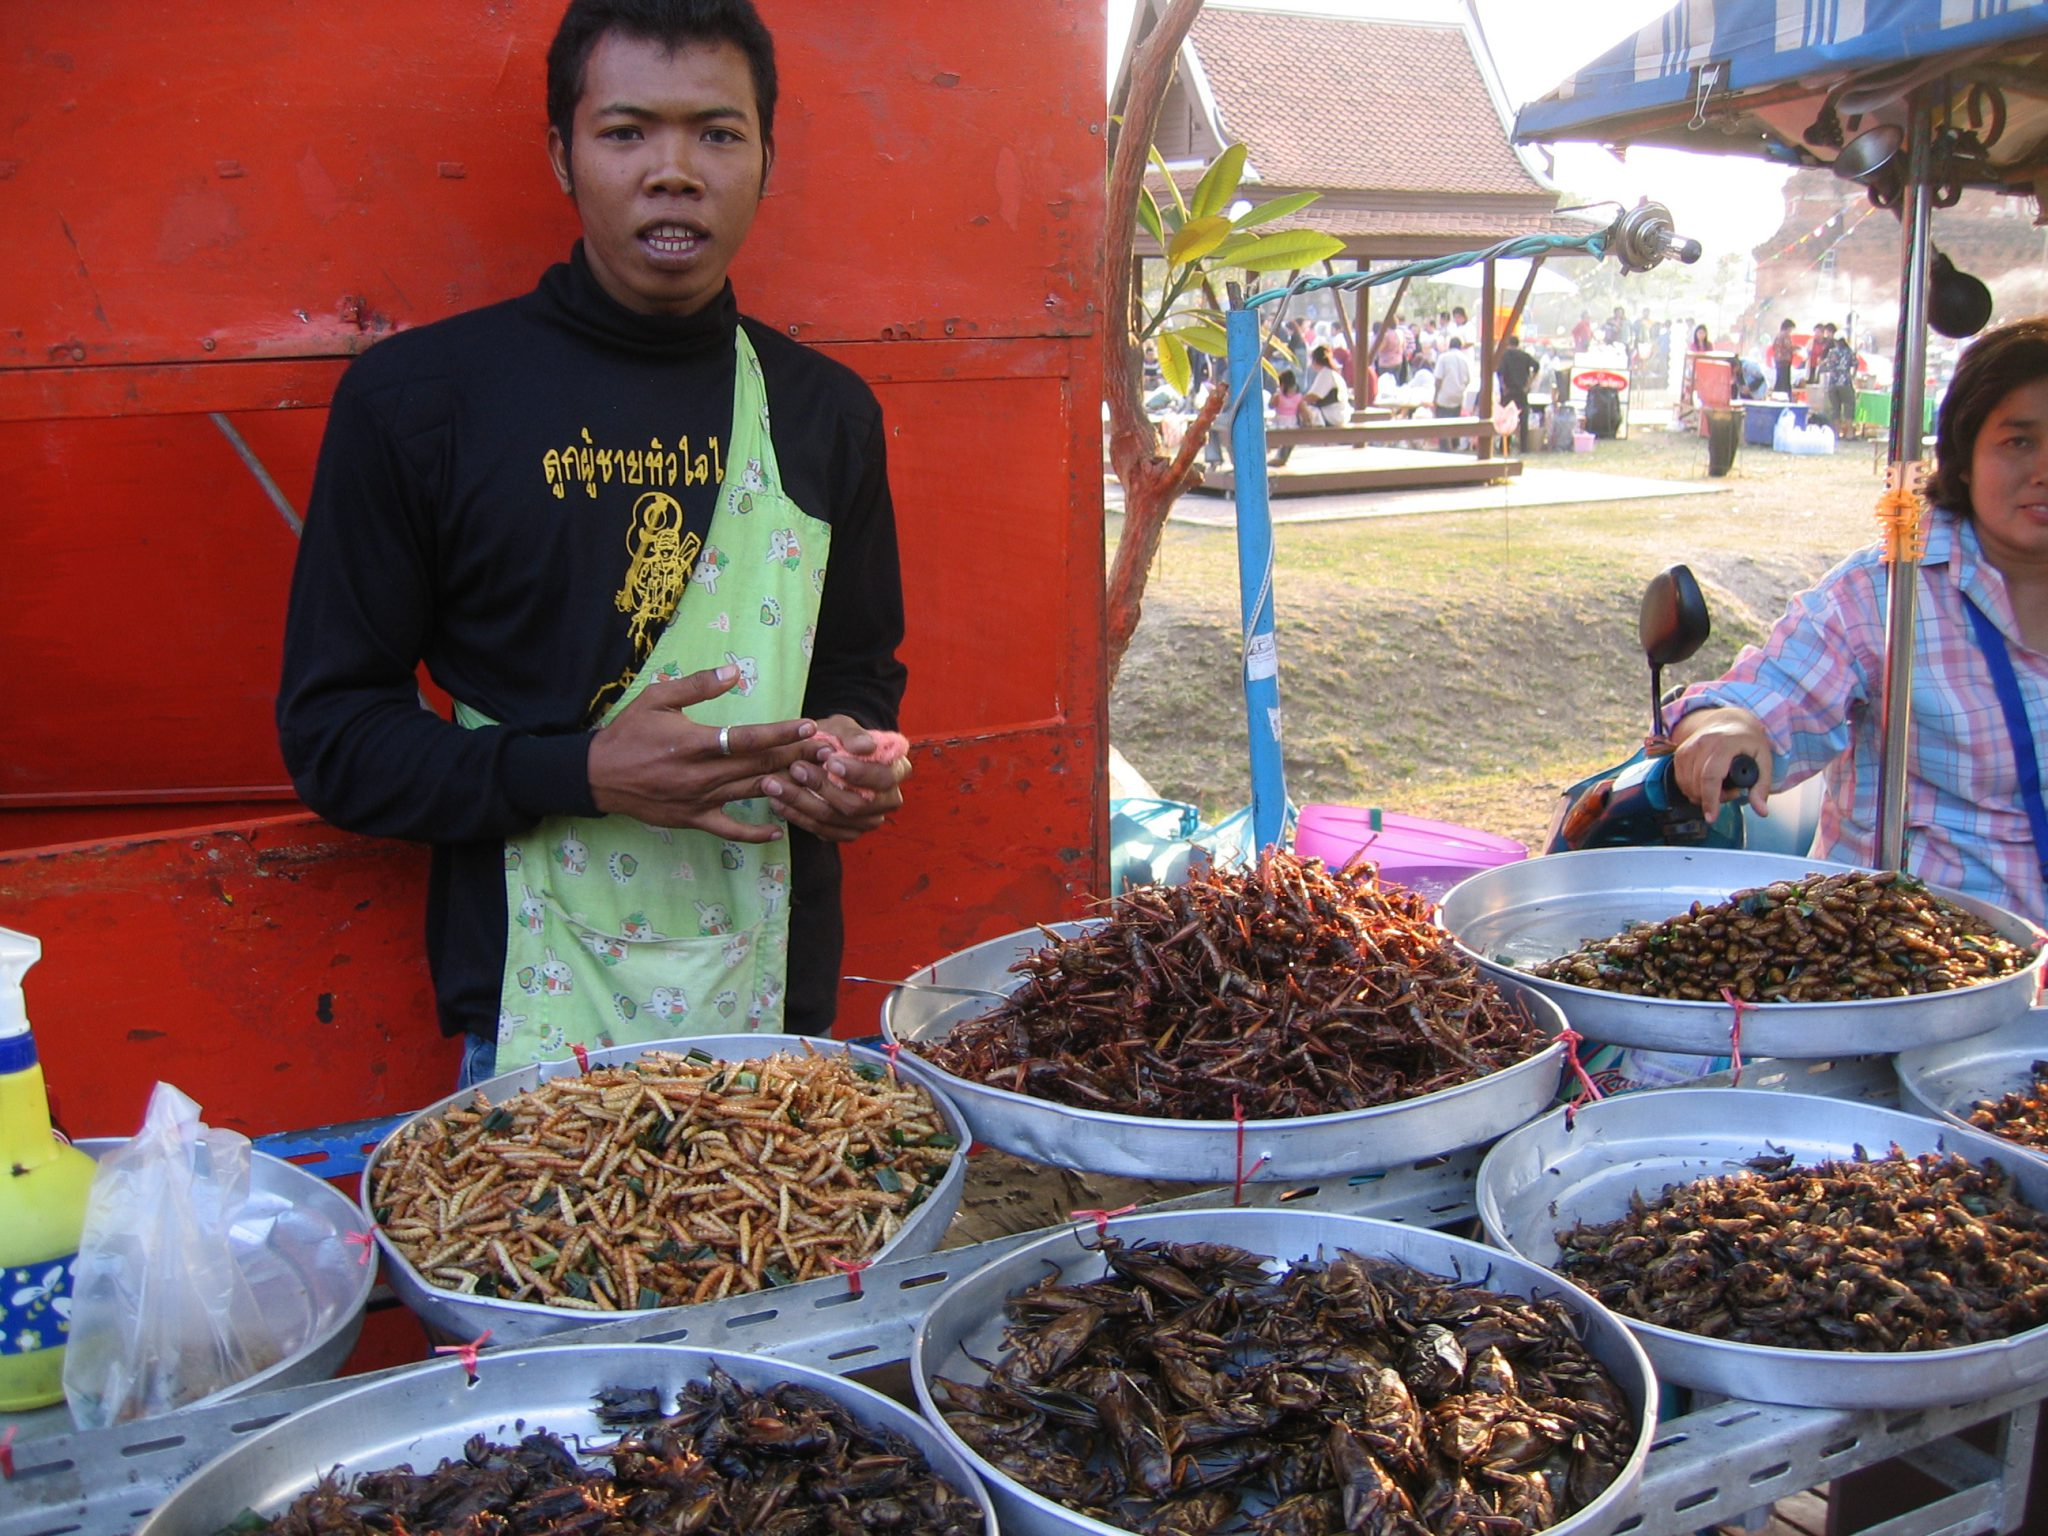 Insects for sale on a market stall